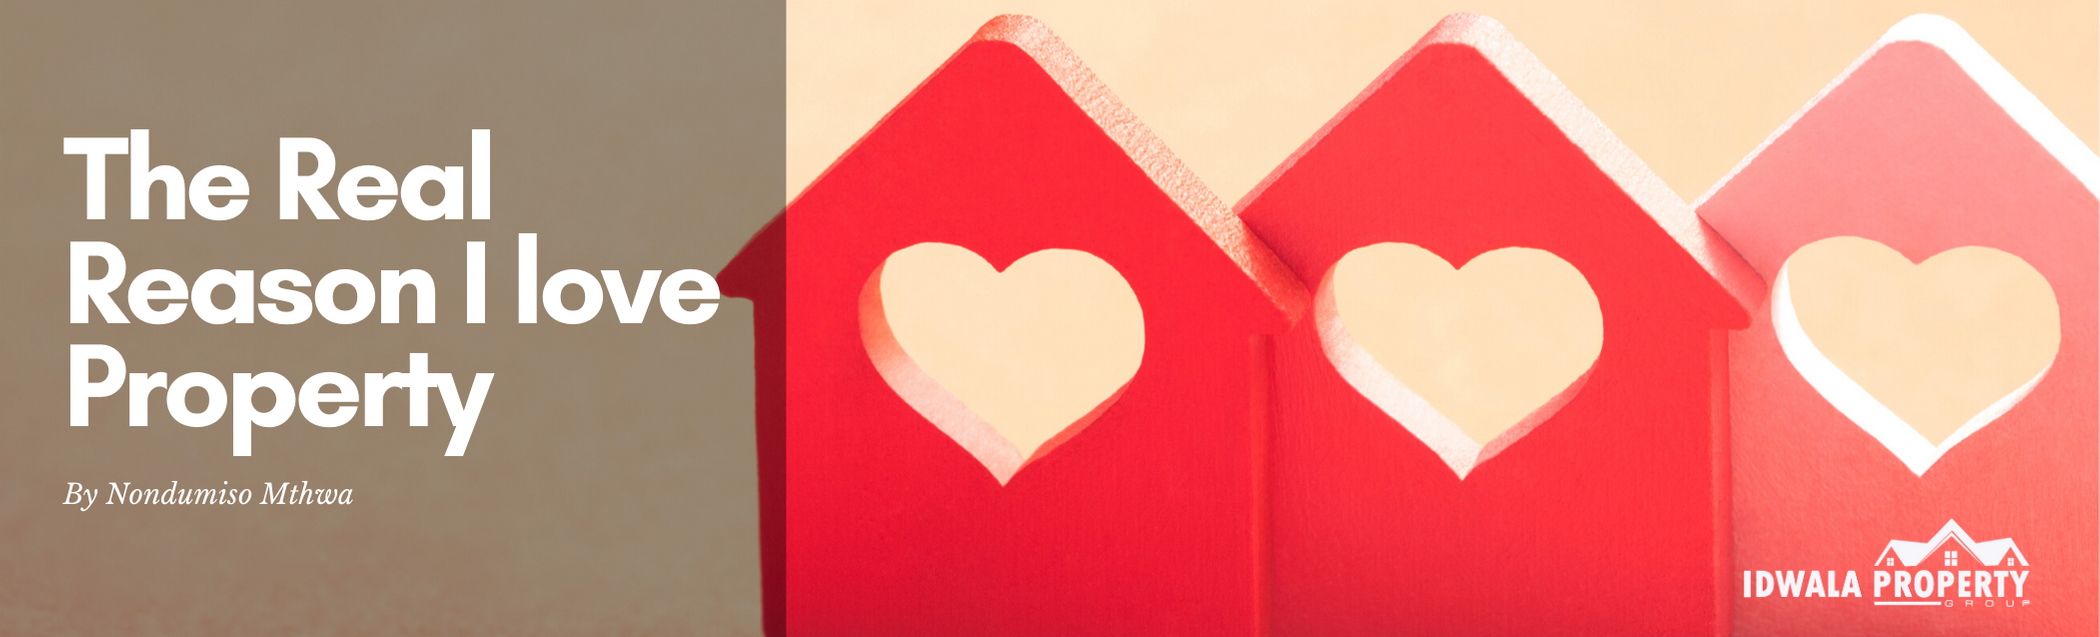 I fell in love with property in 2005 when I first became an independent estate agent for a franchise. After being nominated as the Top Agent within three months of the job, I realised that I genuinely love real estate. I then went on to buy my first real estate franchise two years later, and I've never looked back since.